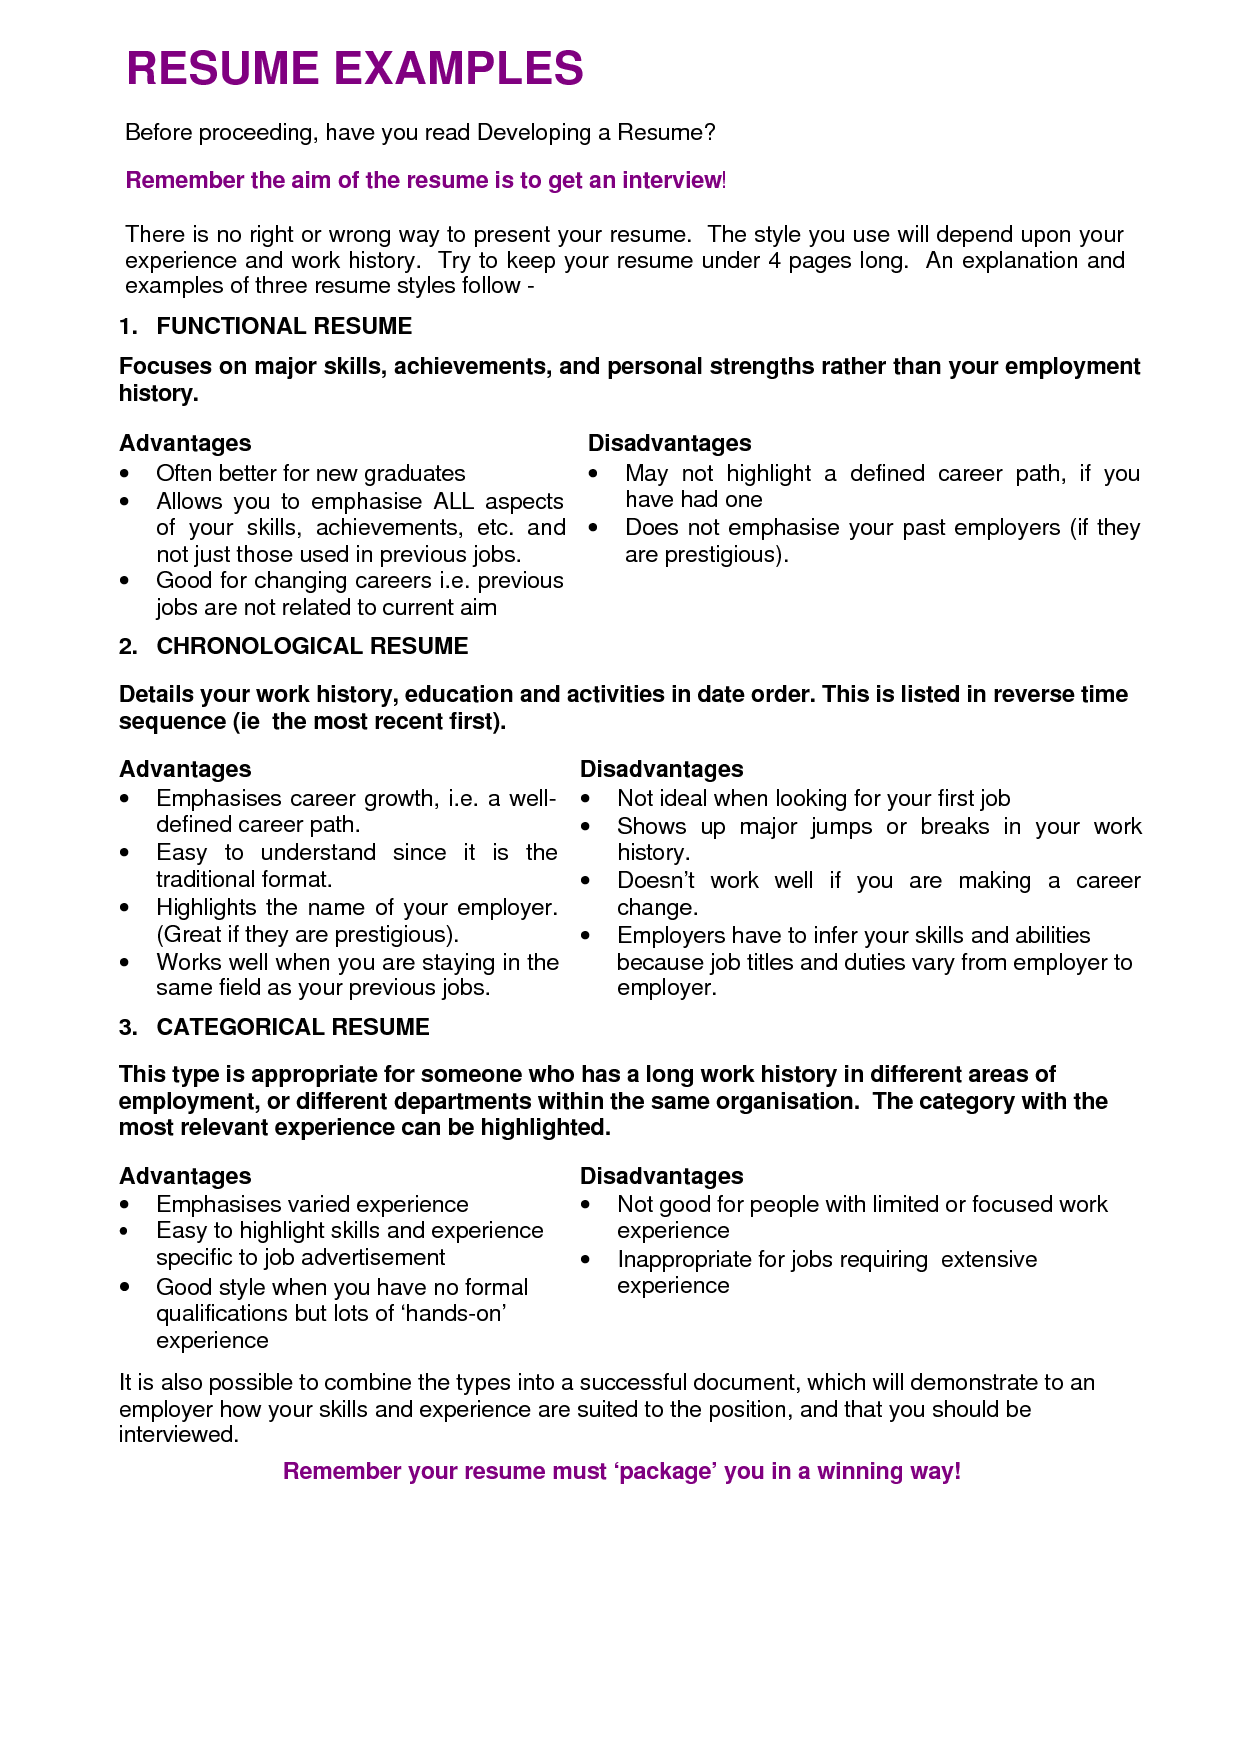 Resume examples #resume #examples #statements | Resume Statements ...